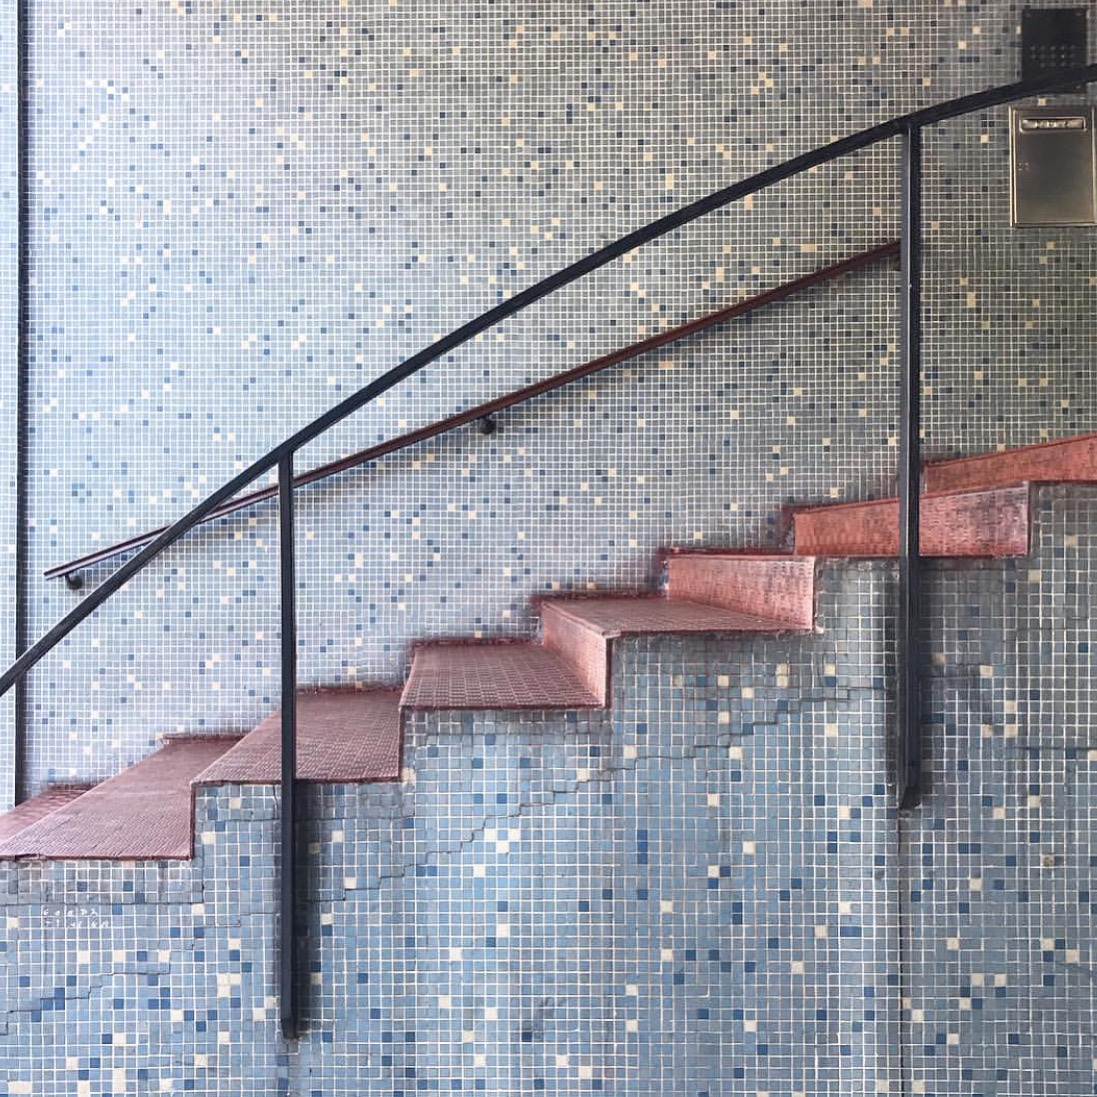 More from the archives from my years of exhaustive exploratory walks around the Buenos Aires barrios. The sexiest modernist stairs, Parque Avellaneda #buenosaires #modernismpic.twitter.com/TKD70Tz3CK